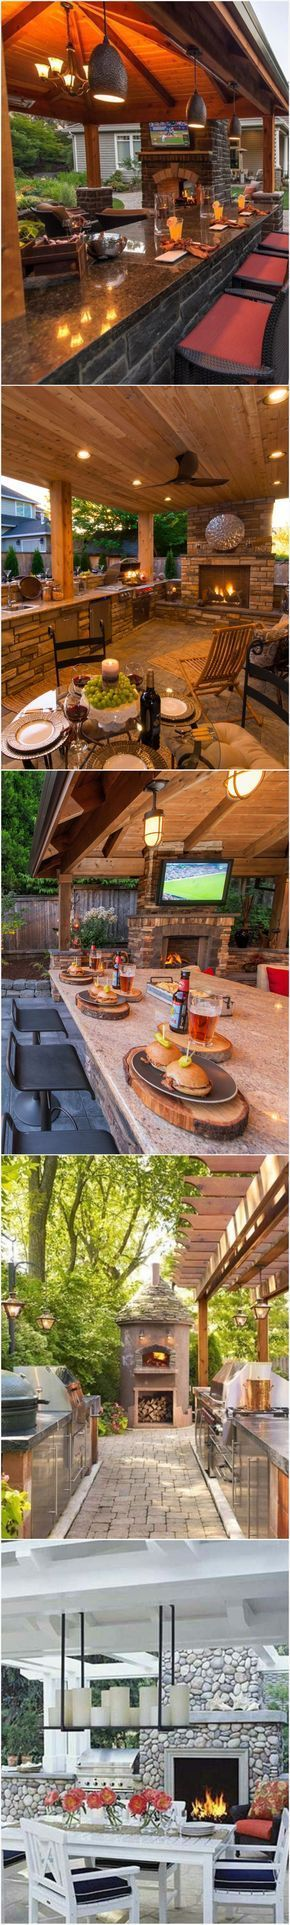 Covered Patio Design Home De on home wet bar designs, home water feature designs, home great room designs, home workshop designs, home pantry designs, home entryway designs, home laundry room designs, home porch designs, home media room designs, home foyer designs, home bar area designs, home deck designs, home mud room designs, home tile floor designs, home front entry designs,